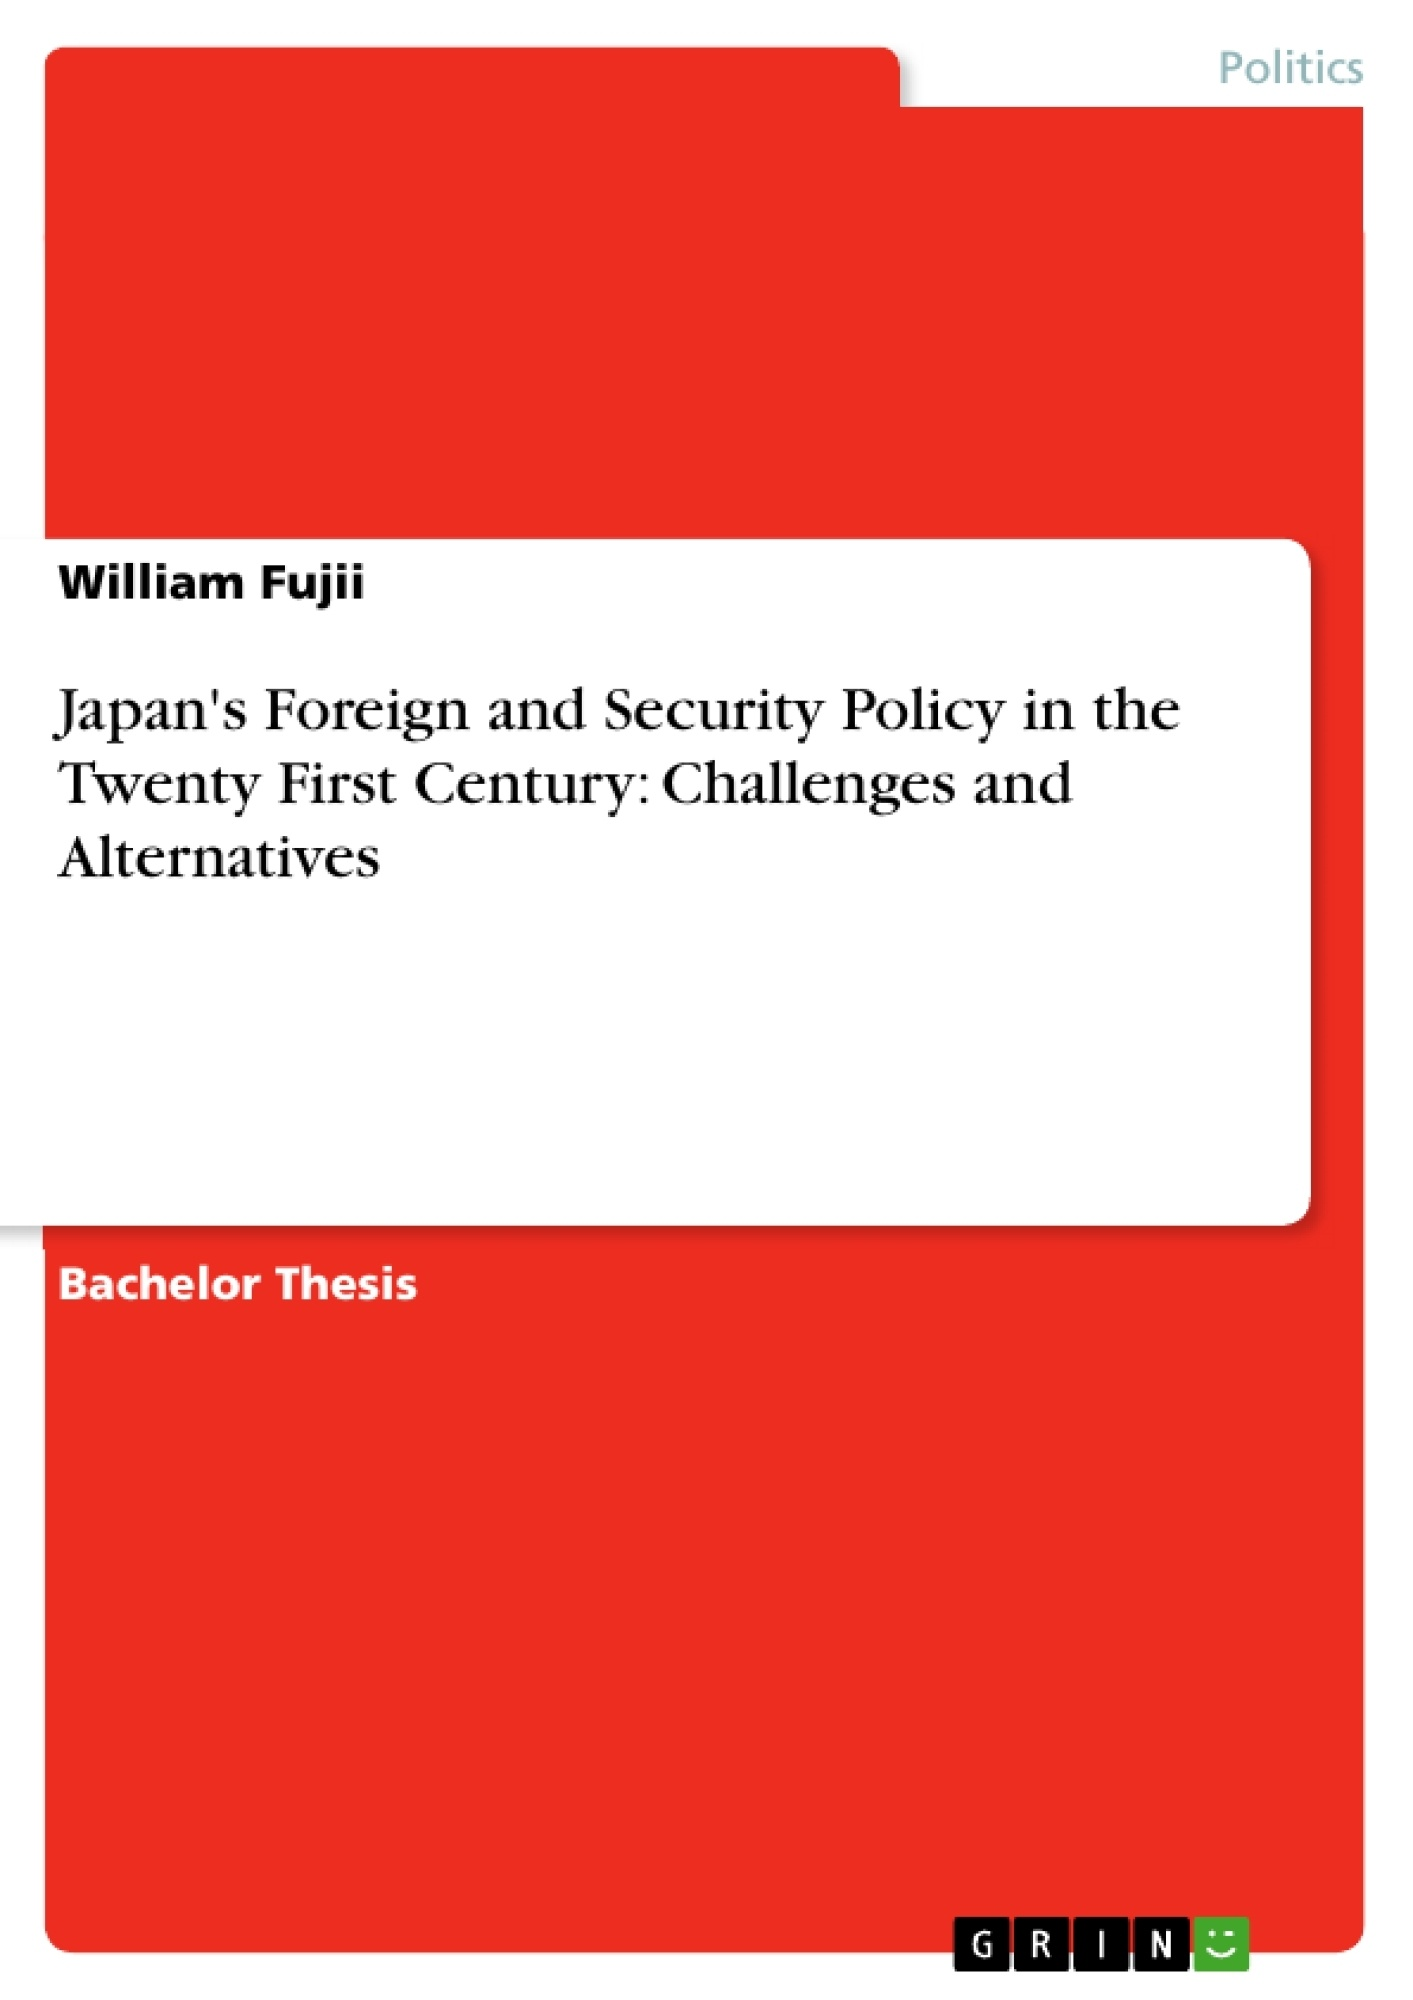 Title: Japan's Foreign and Security Policy in the Twenty First Century: Challenges and Alternatives